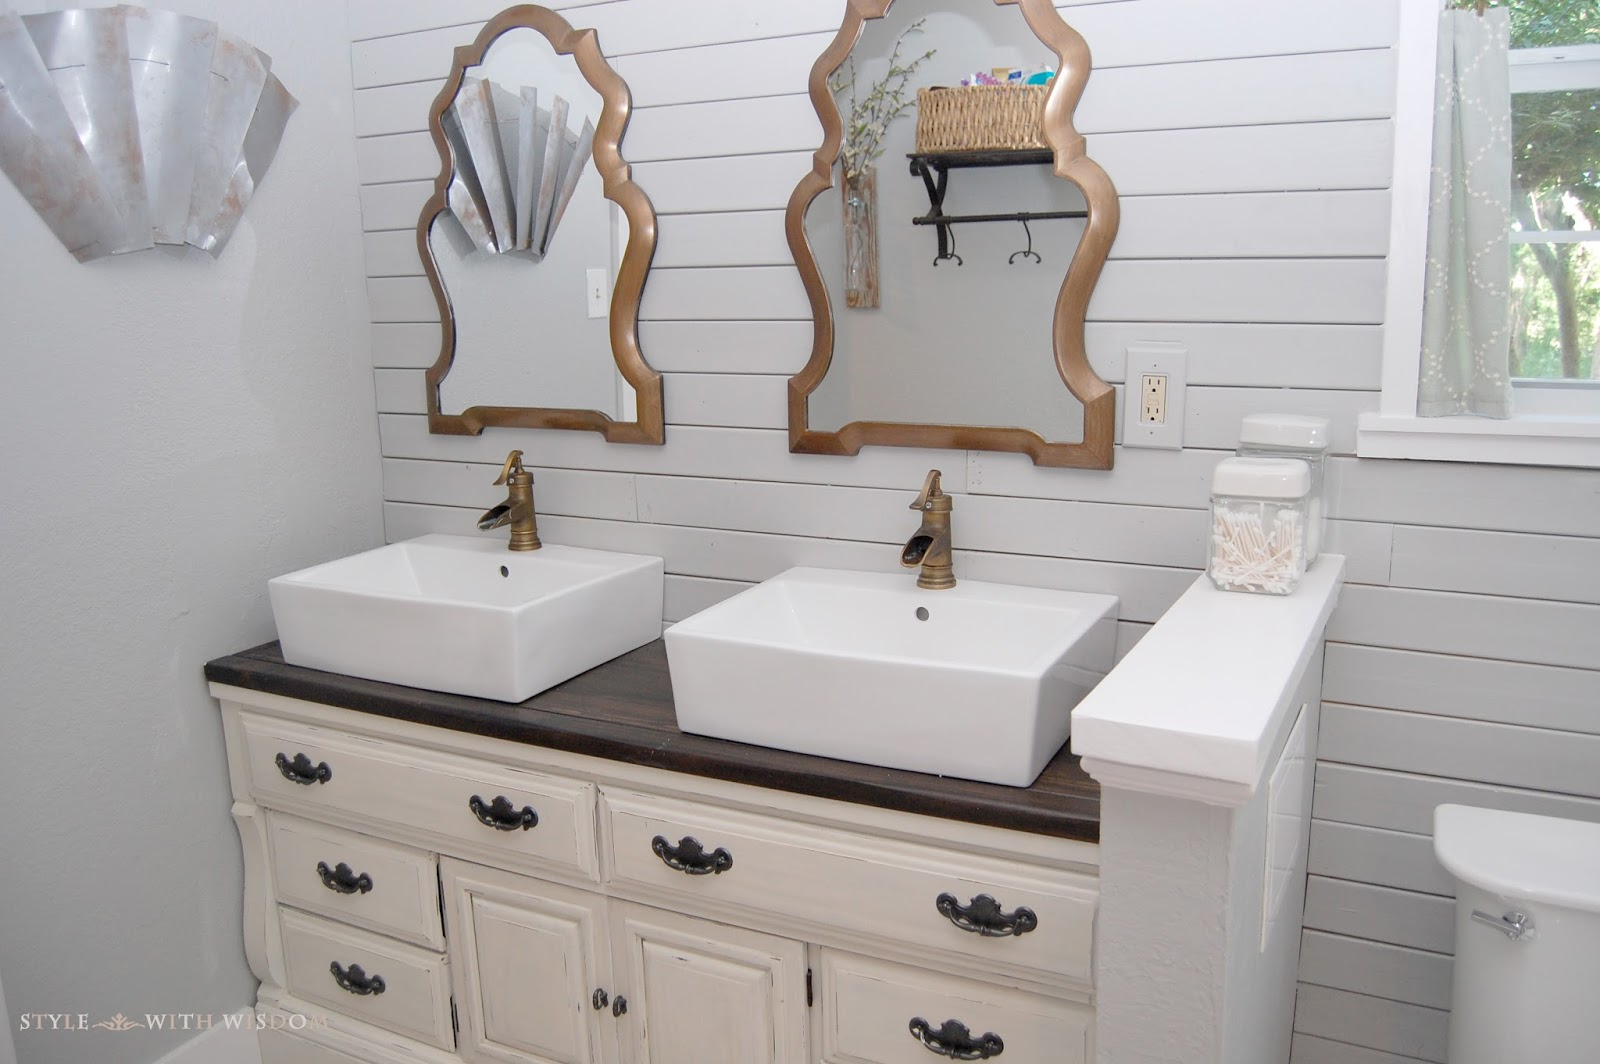 Overstock Farmhouse Sink Style With Wisdom Master Bath Heaven